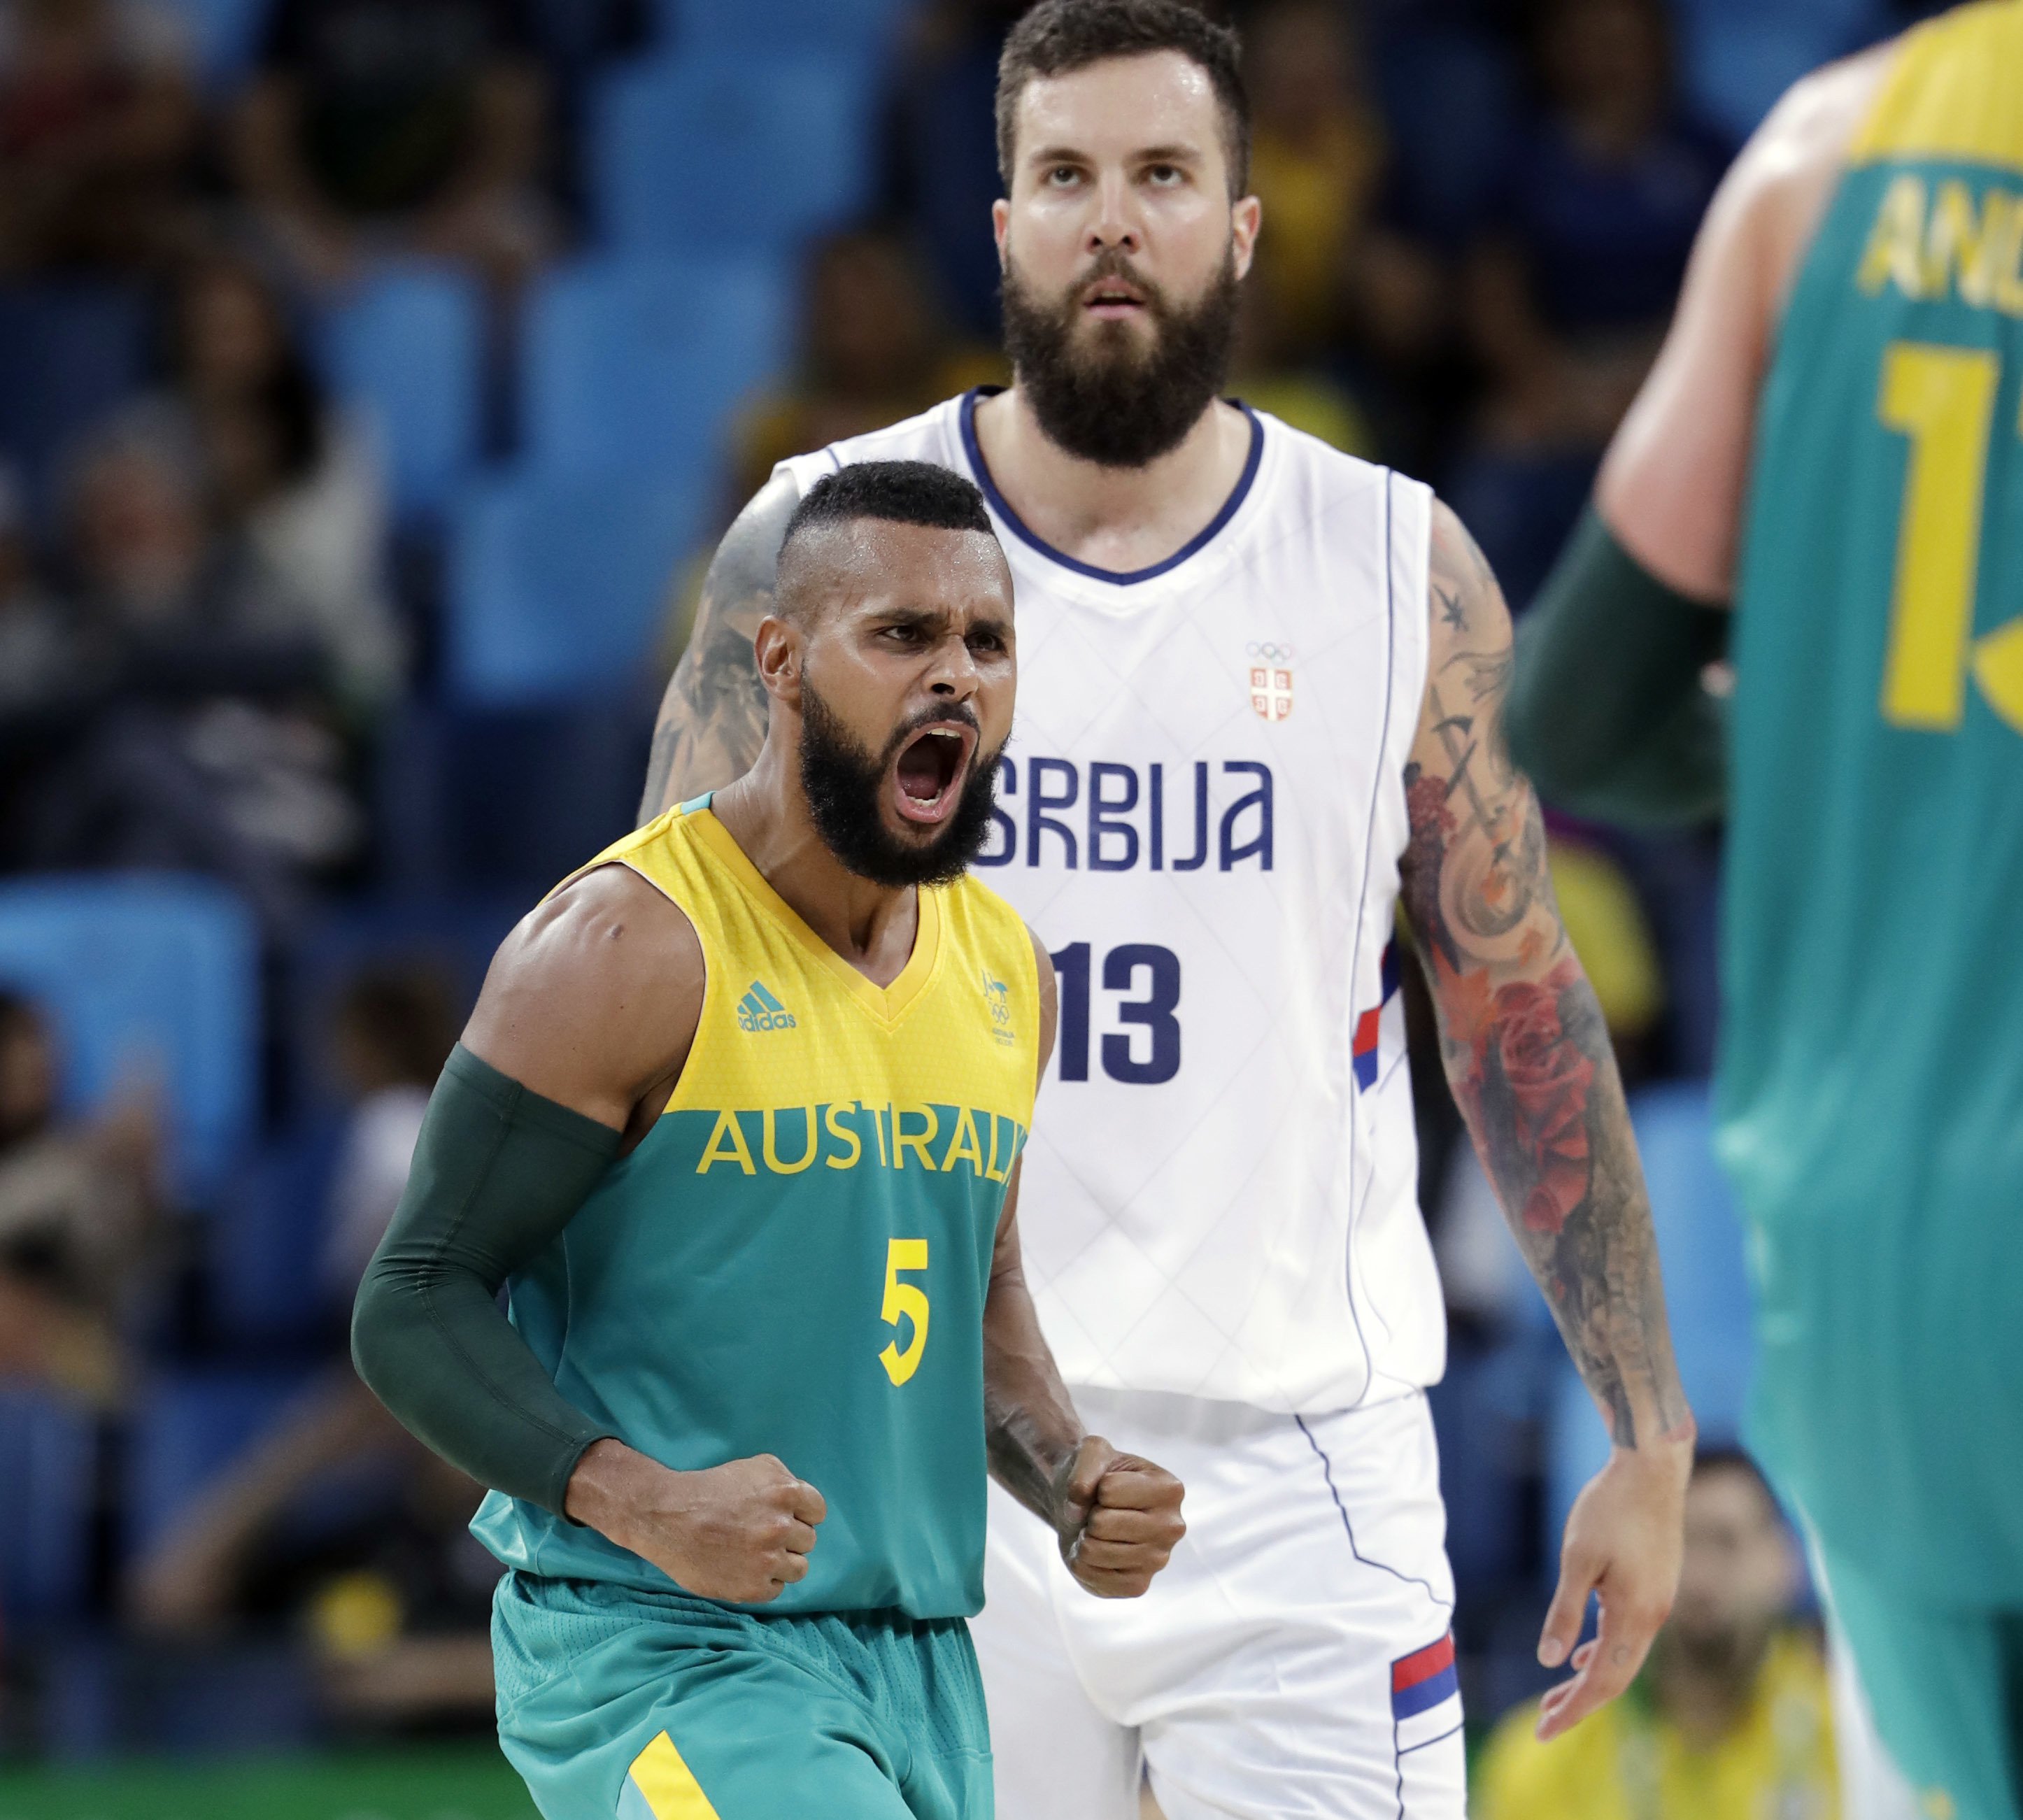 Australia's Patty Mills (5) celebrates a score in front of Serbia's Miroslav Raduljica (13) during a men's basketball game at the 2016 Summer Olympics in Rio de Janeiro, Brazil, Monday, Aug. 8, 2016. (AP Photo/Eric Gay)